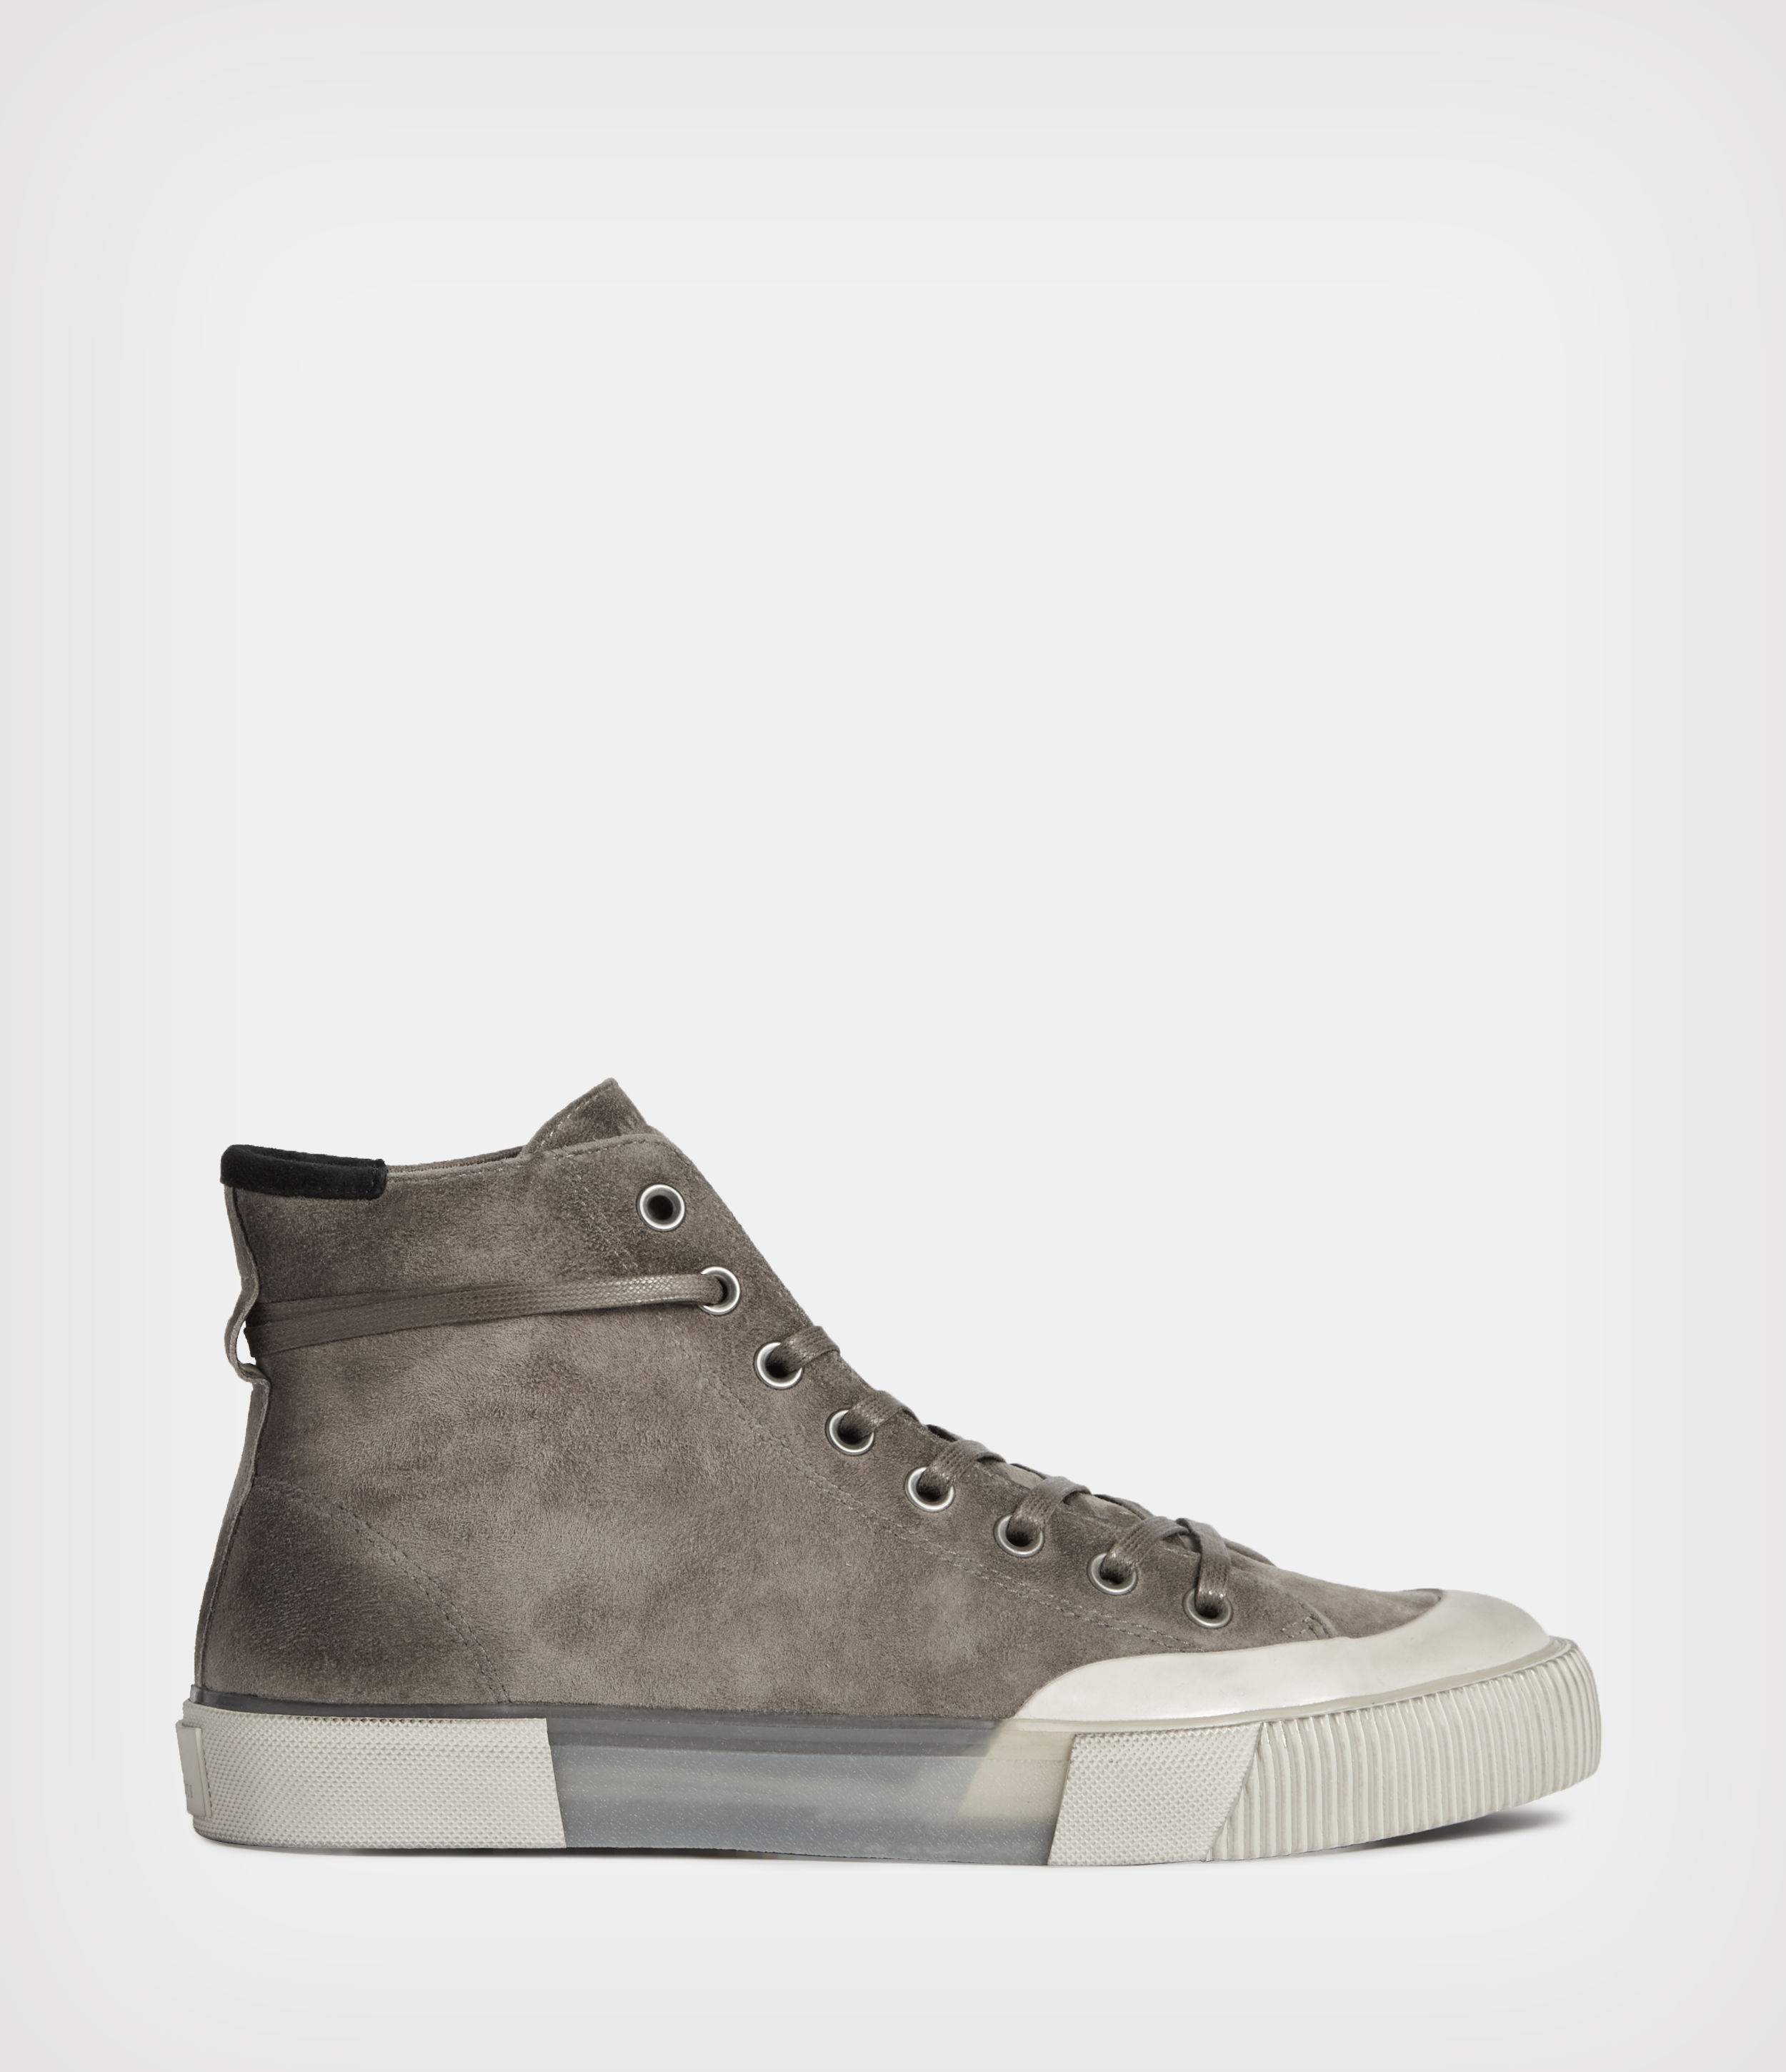 AllSaints Mens Dumont High Top Suede Trainers, Grey, Size: UK 11/US 12/EU 45